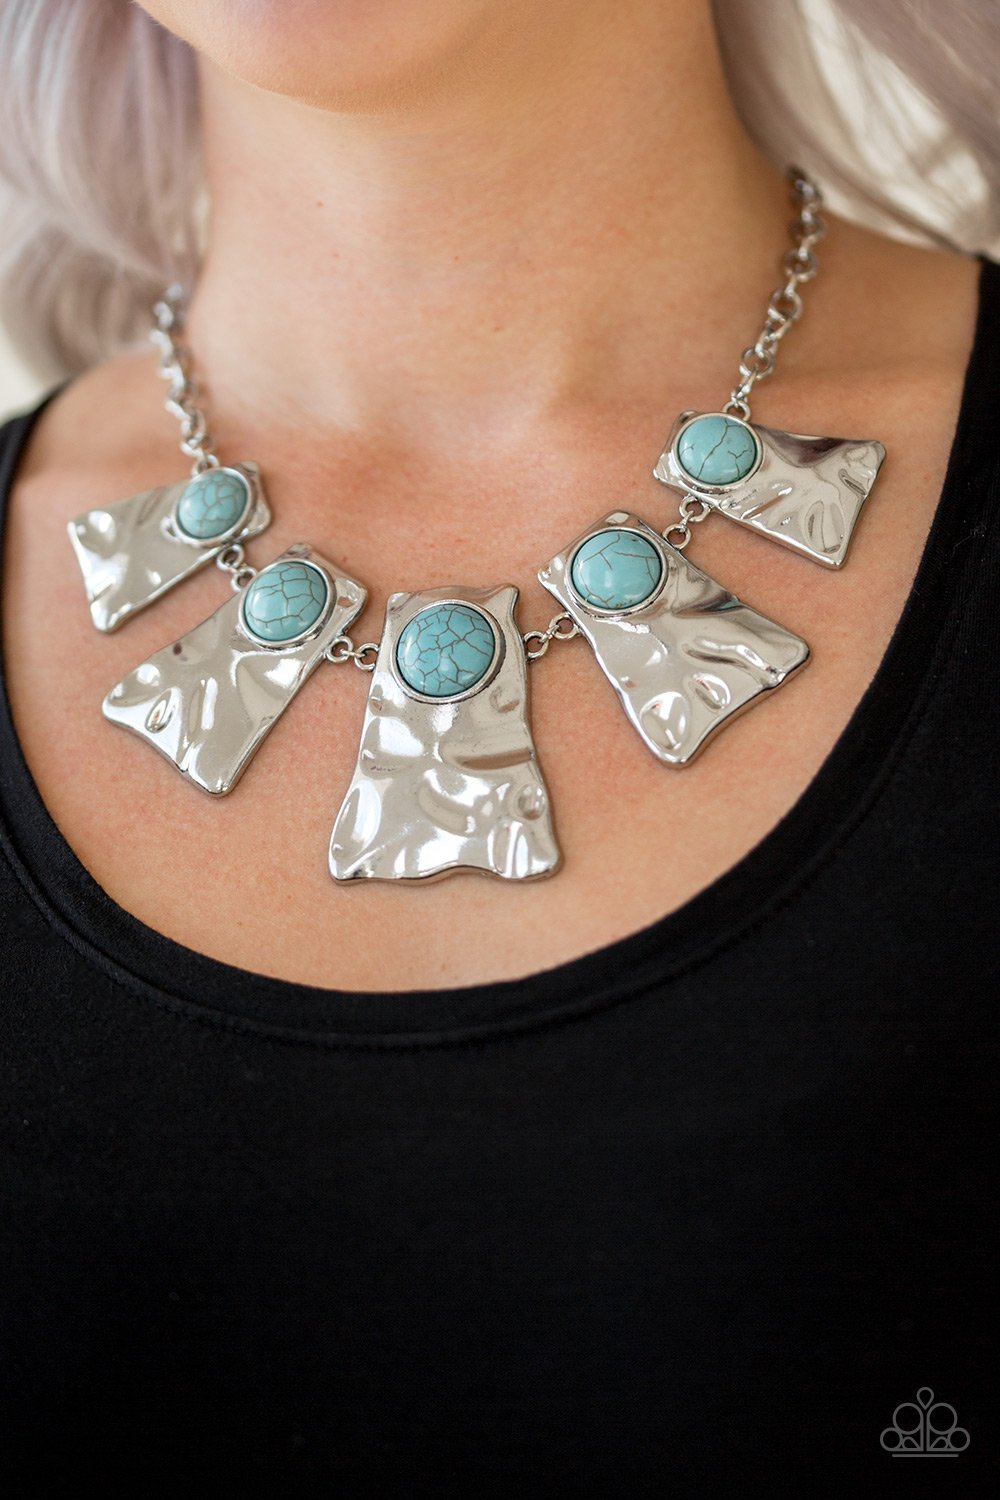 Cougar - blue - Paparazzi necklace